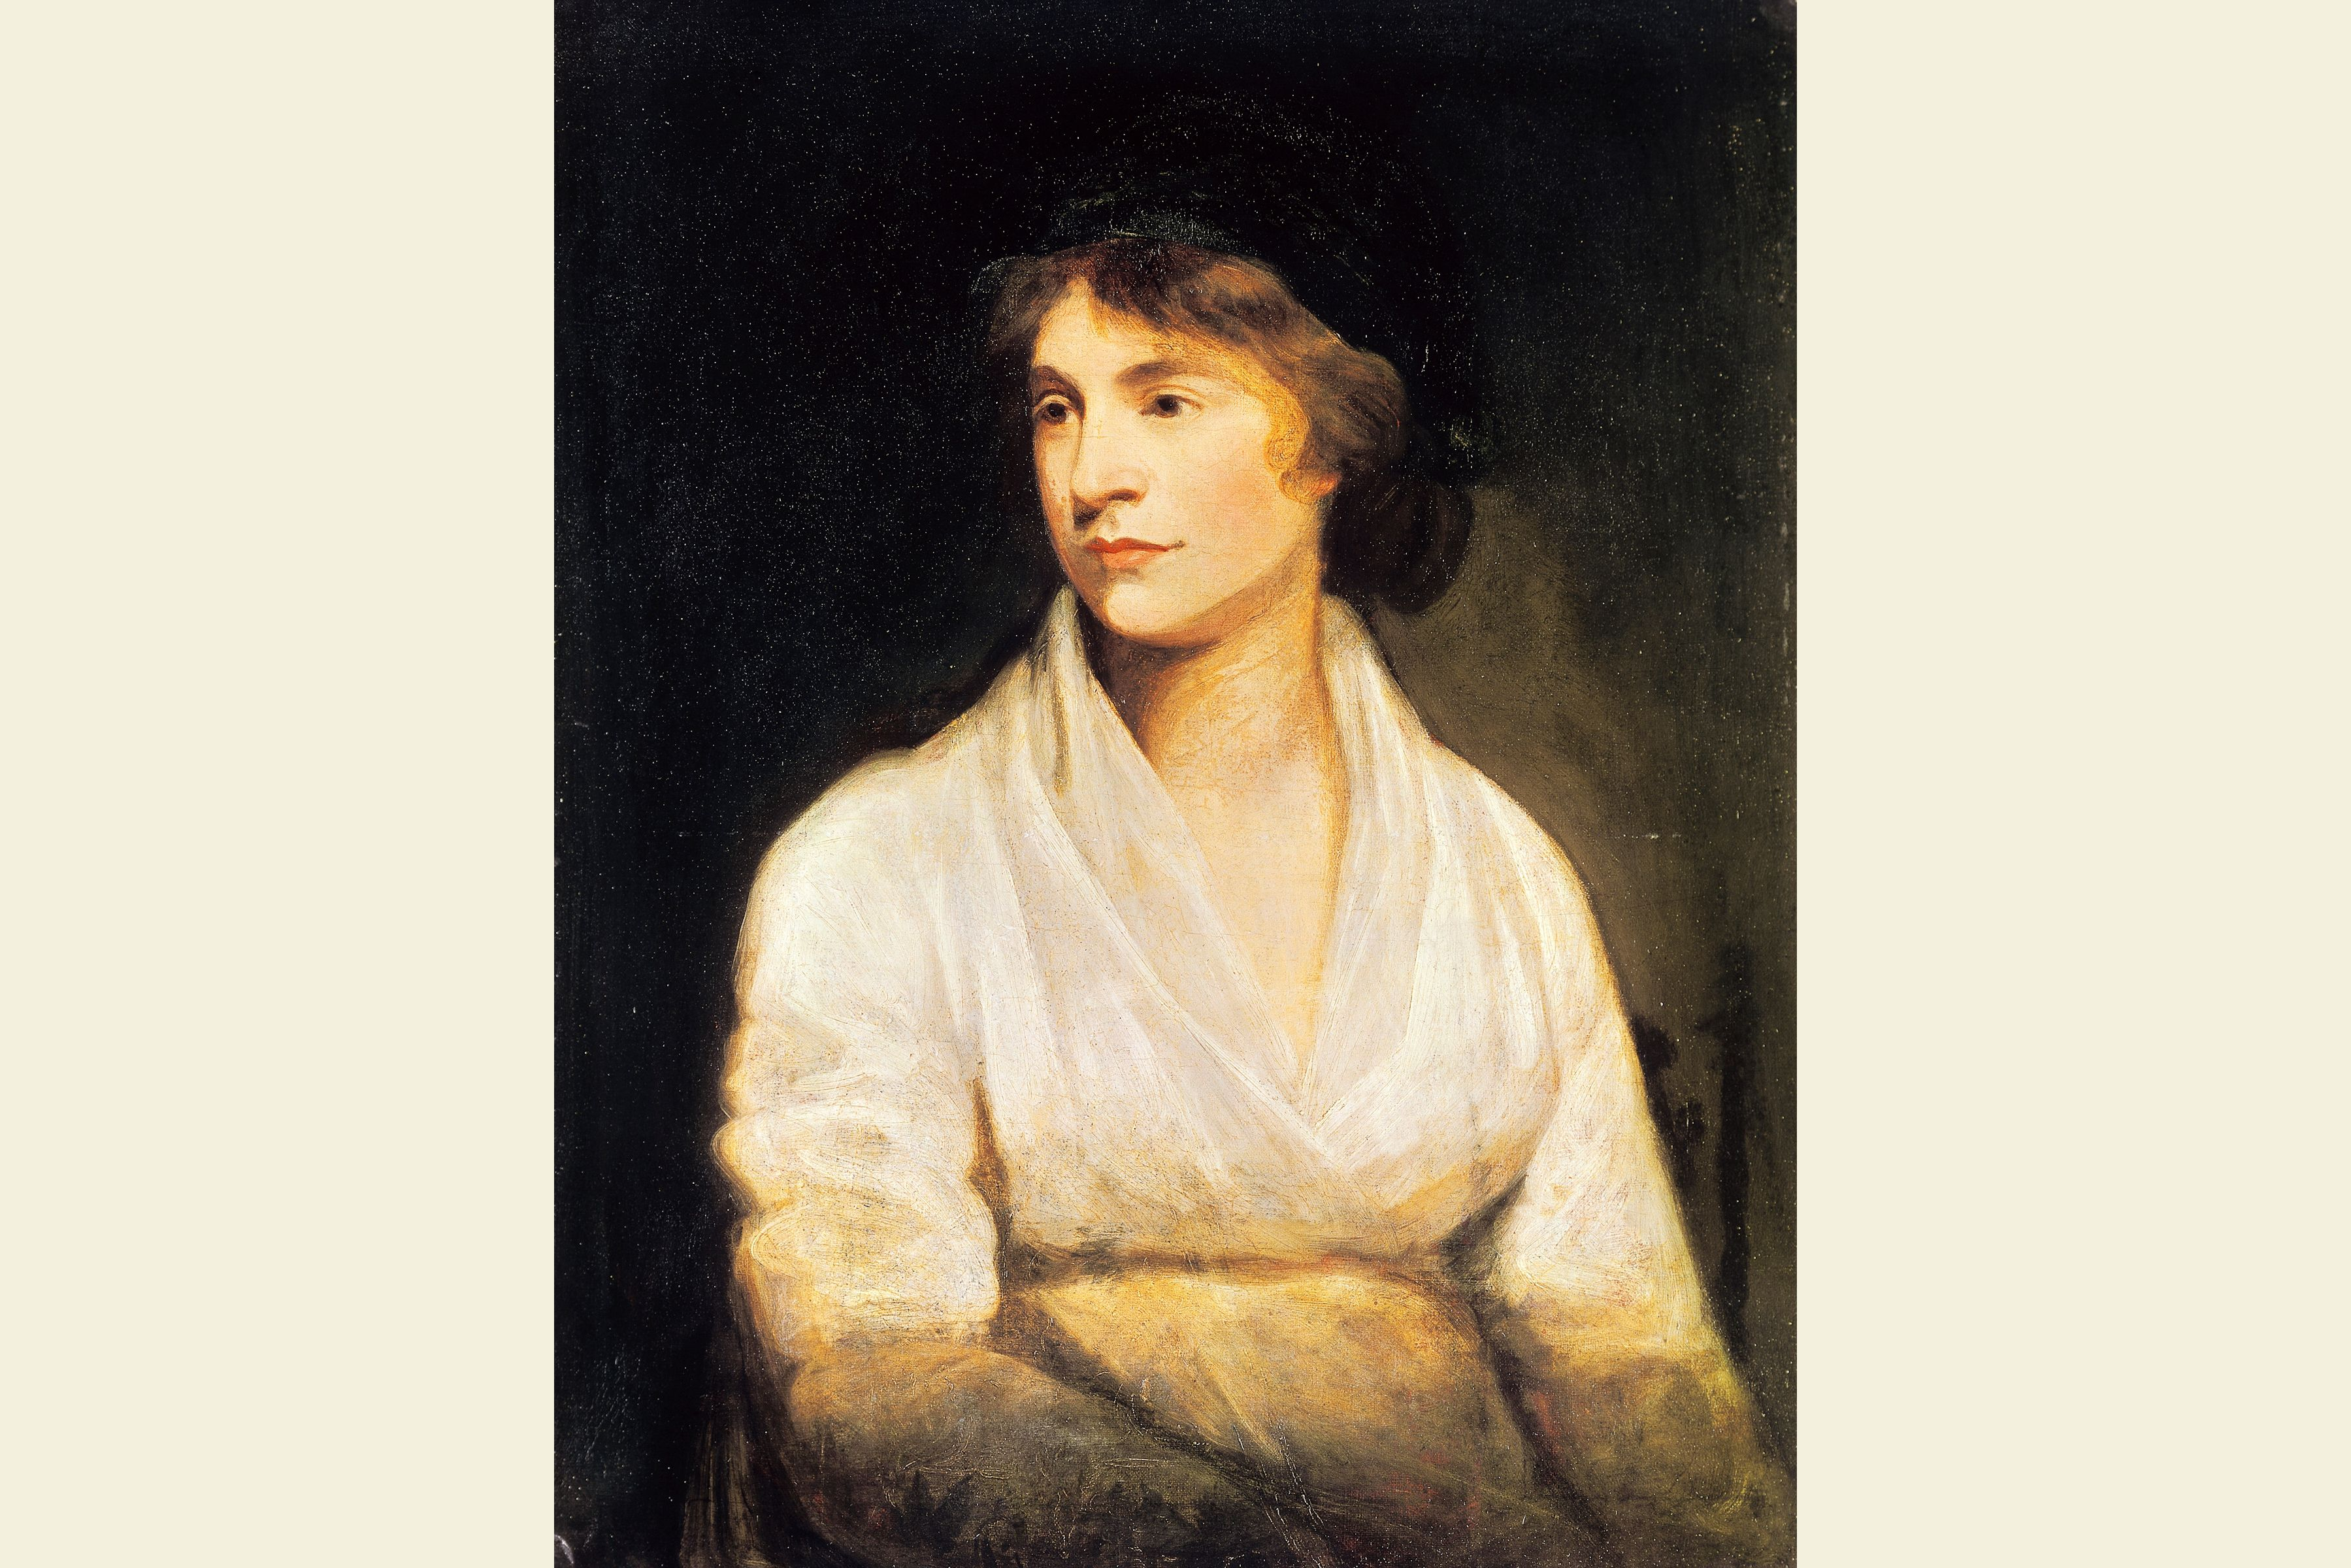 mary wollstonecraft the rights of women A vindication of the rights of woman by r m janes it is popularly  assumed that mary wollstonecraft's a vindication of the rights of woman was.